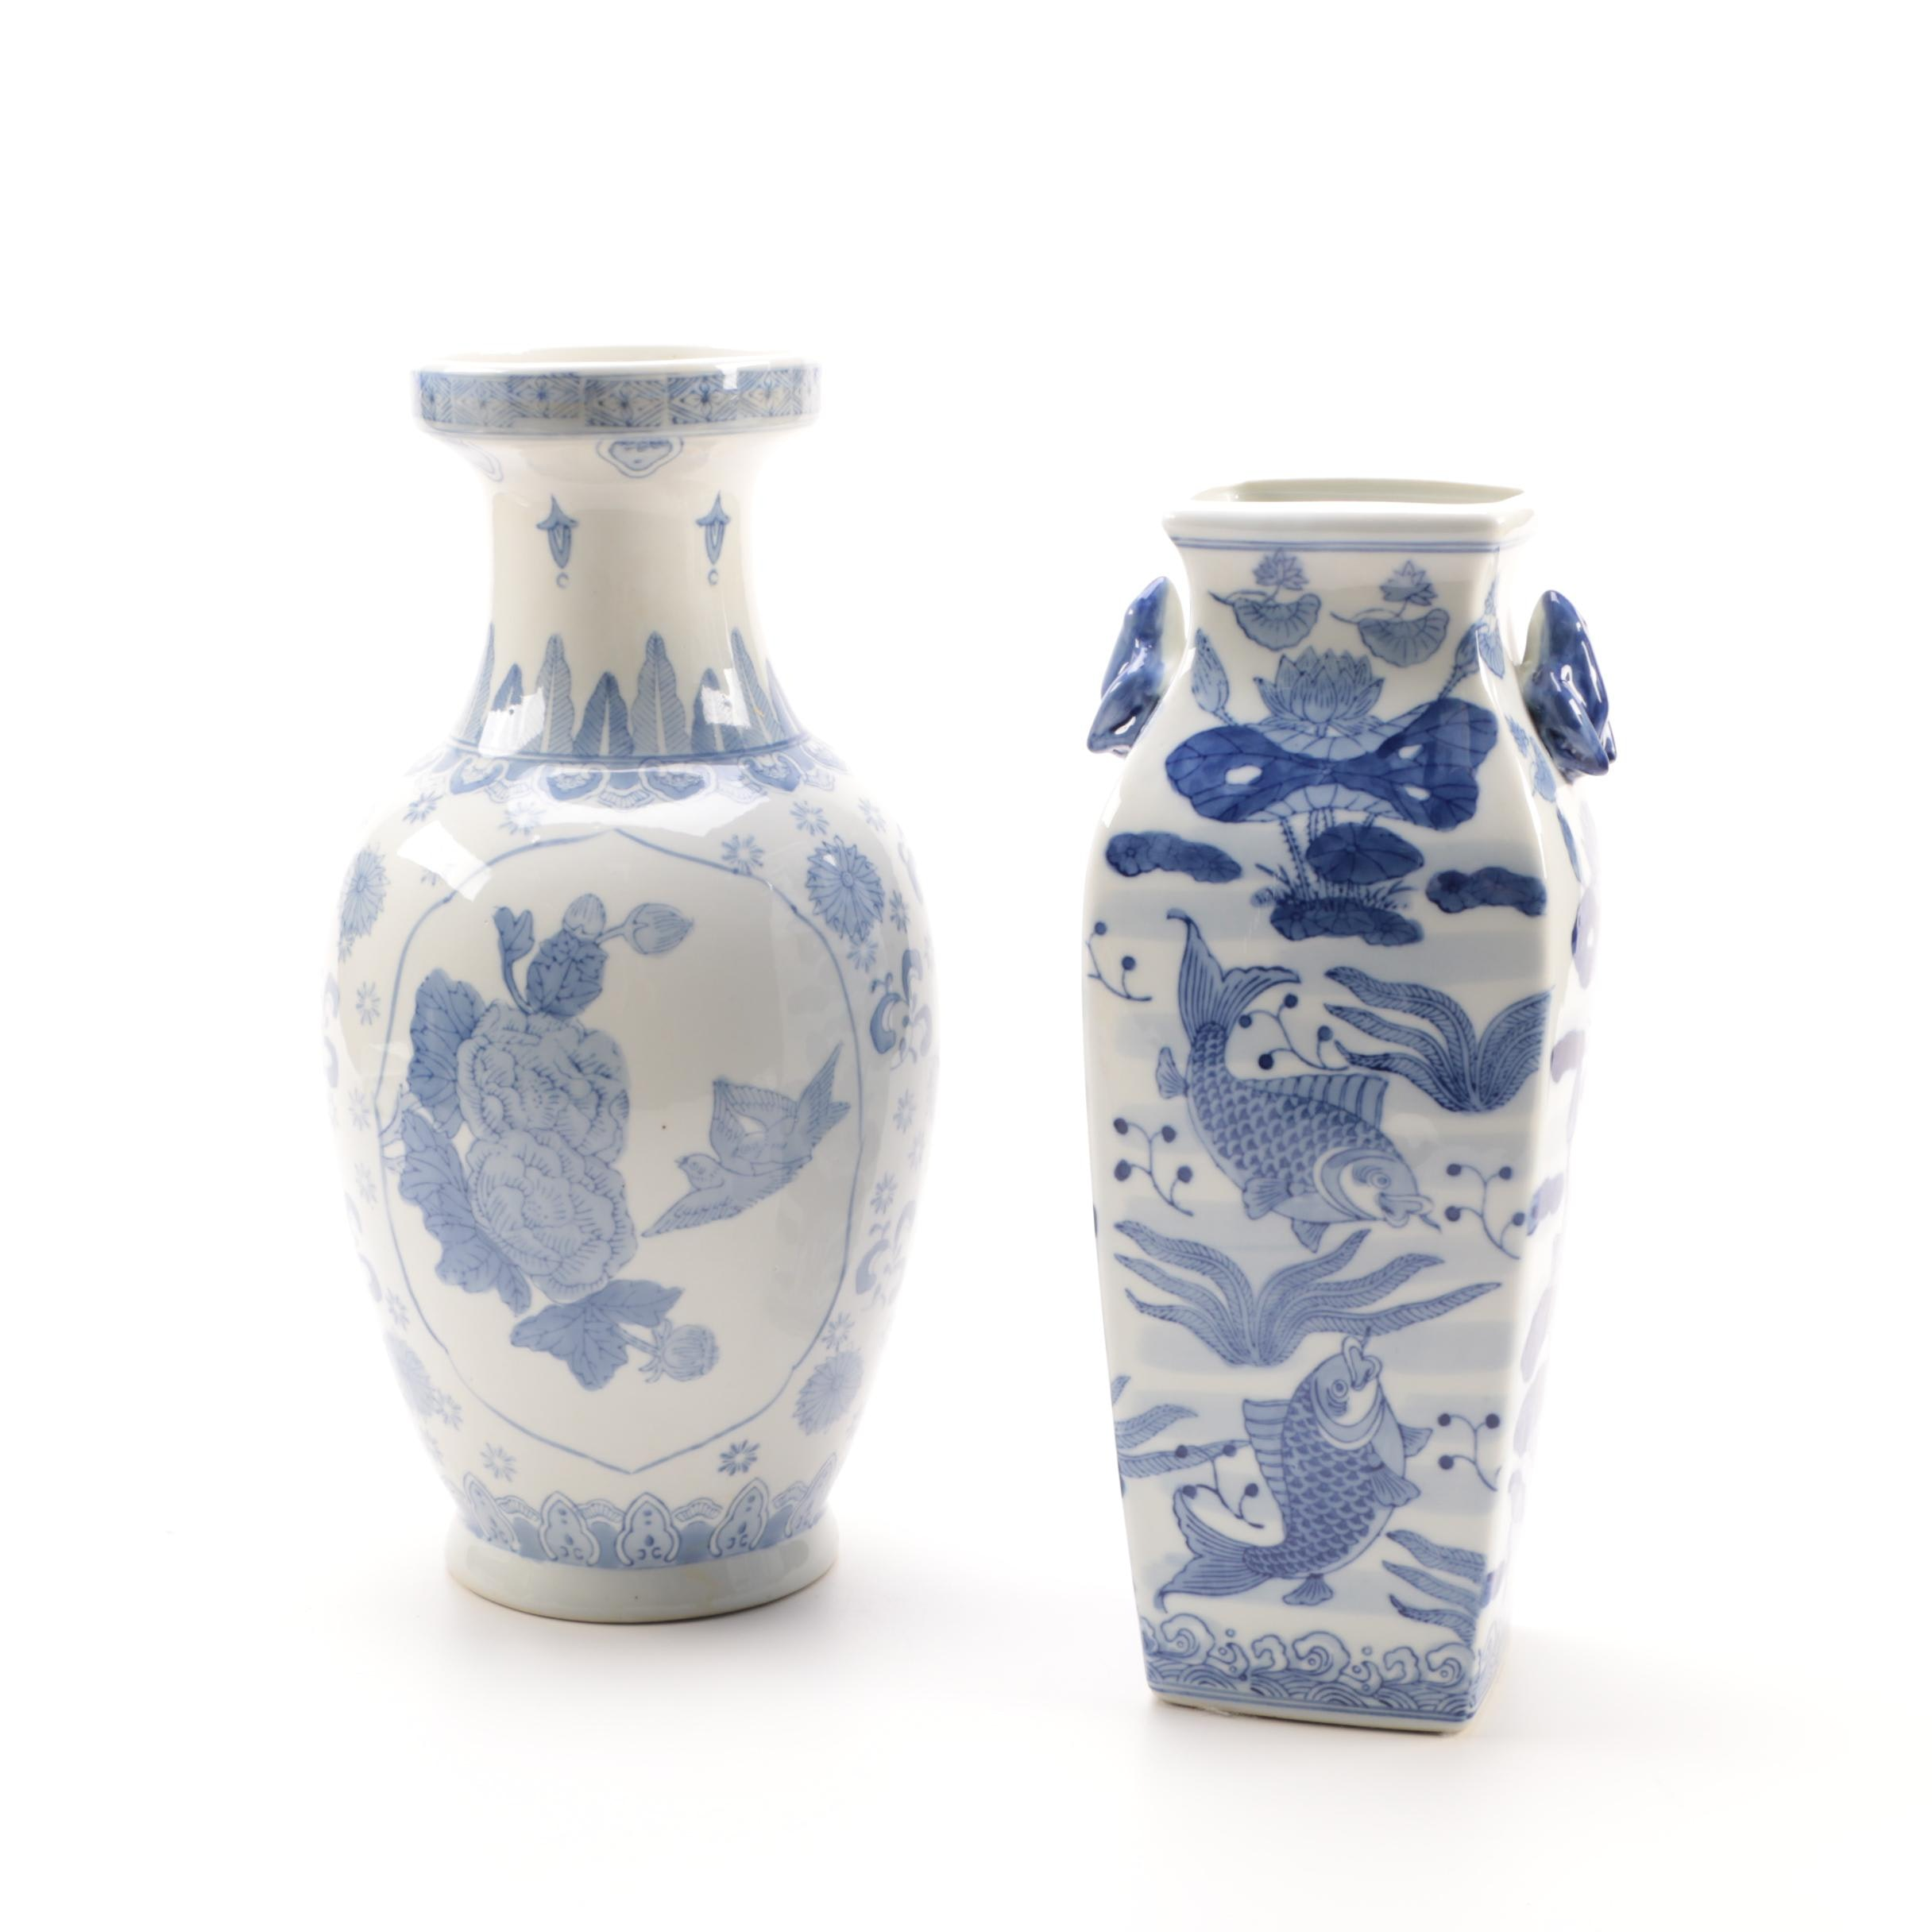 Decorative Chinese Blue and White Porcelain Vases